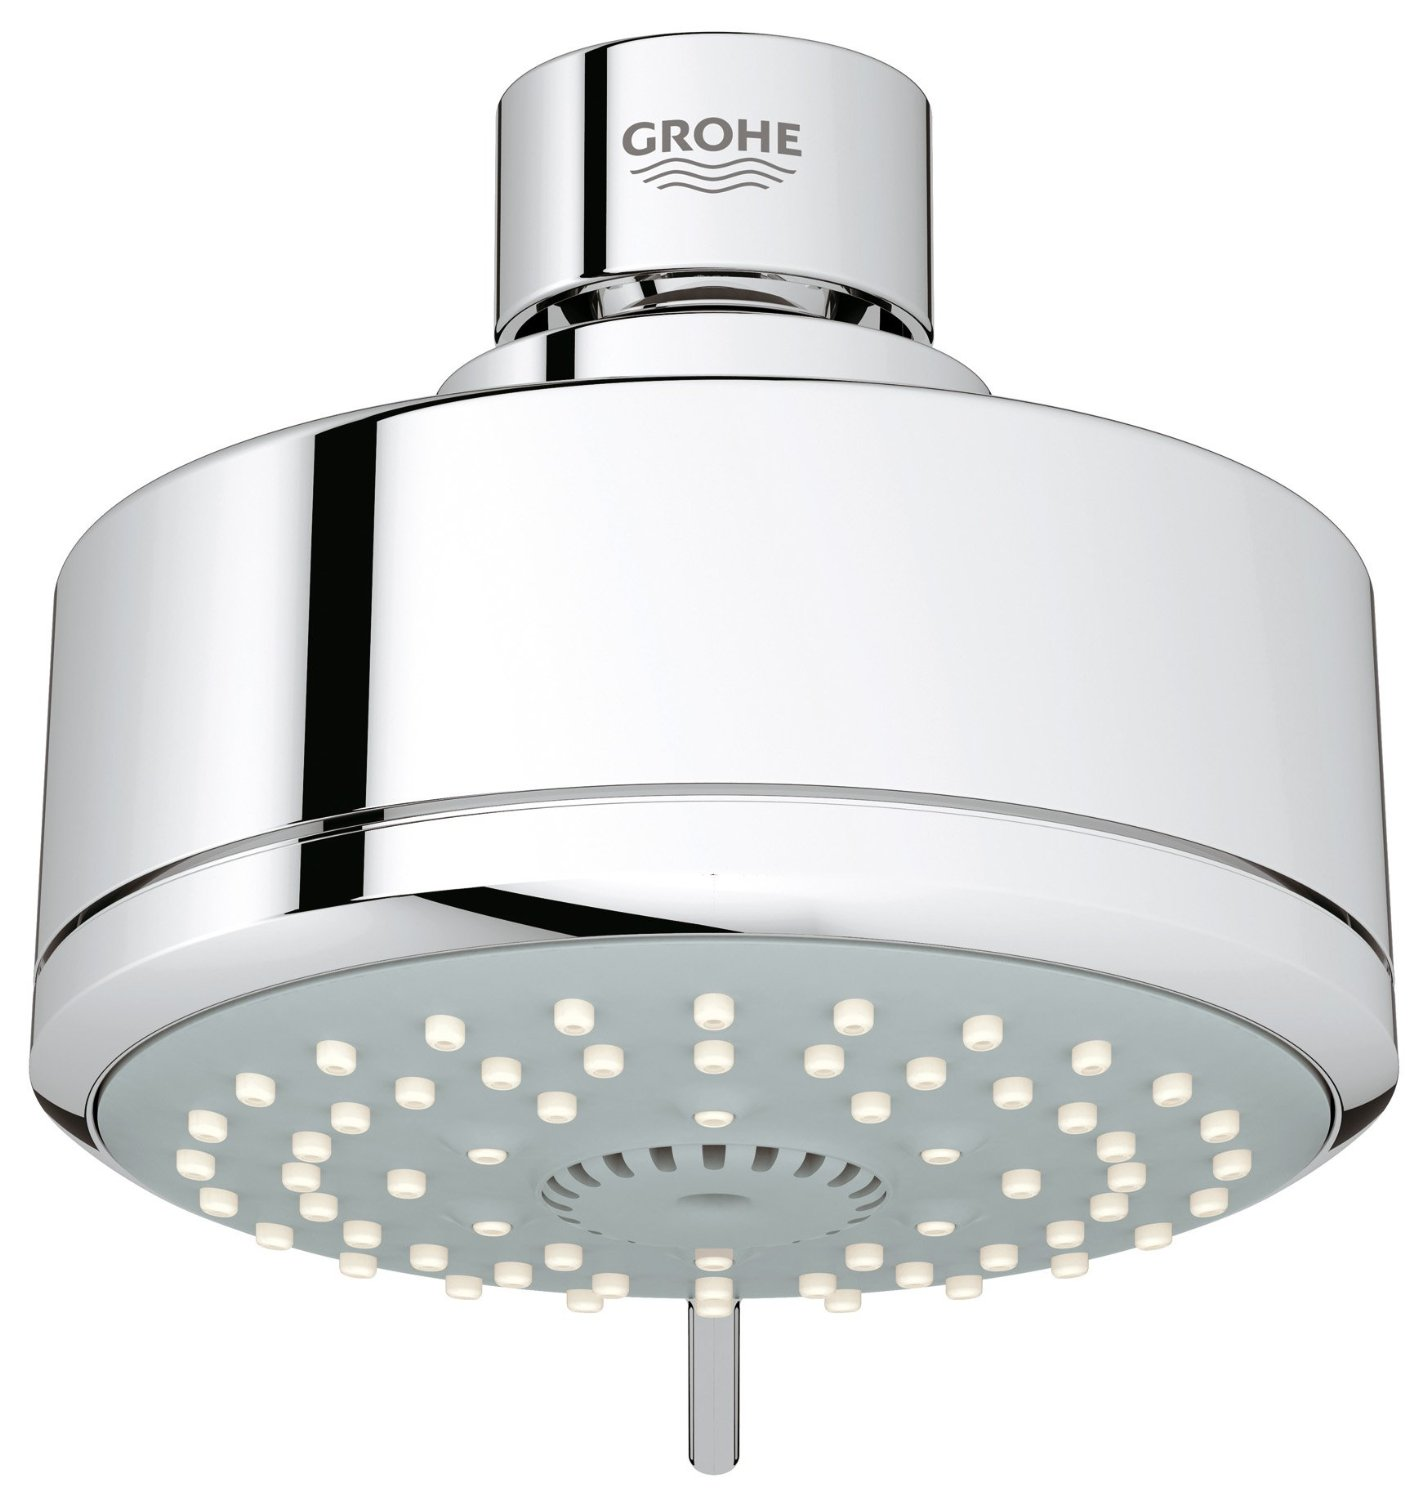 Grohe 27591000 New Tempesta Cosmopolitan 4-spray Shower head